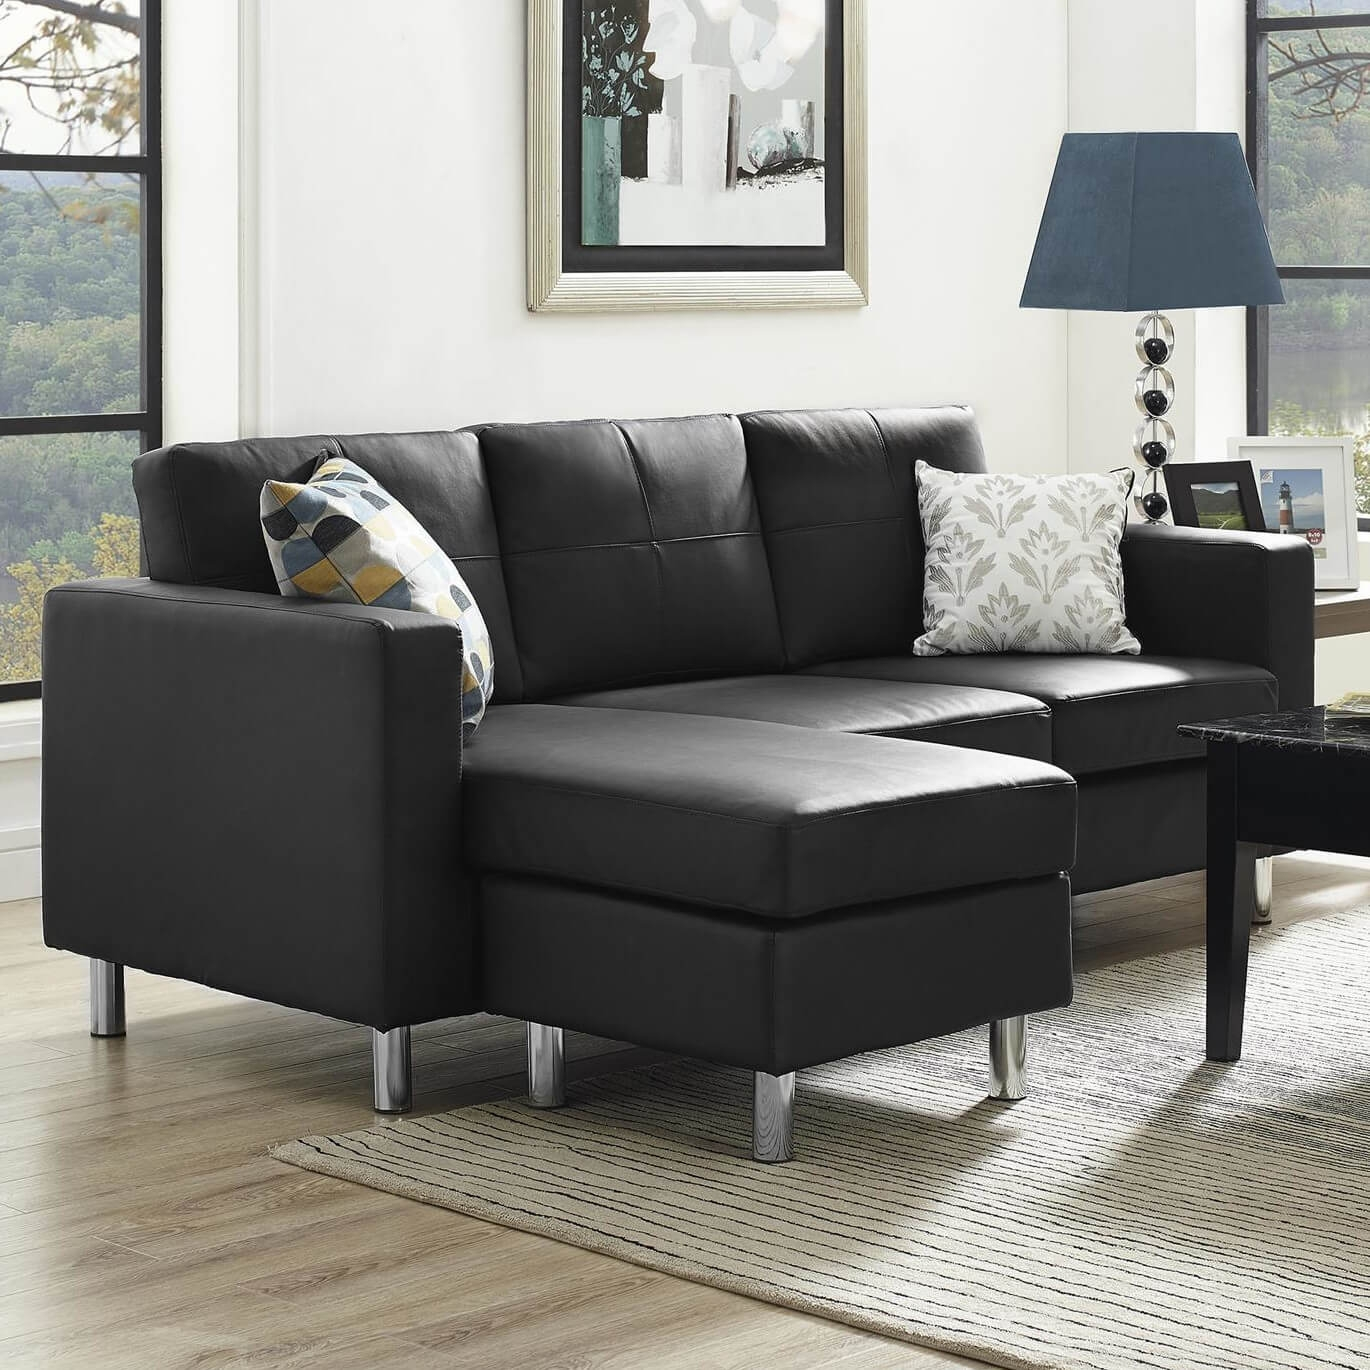 13 Sectional Sofas Under 500 Several Styles For Quality Sectional Sofa (Image 2 of 15)